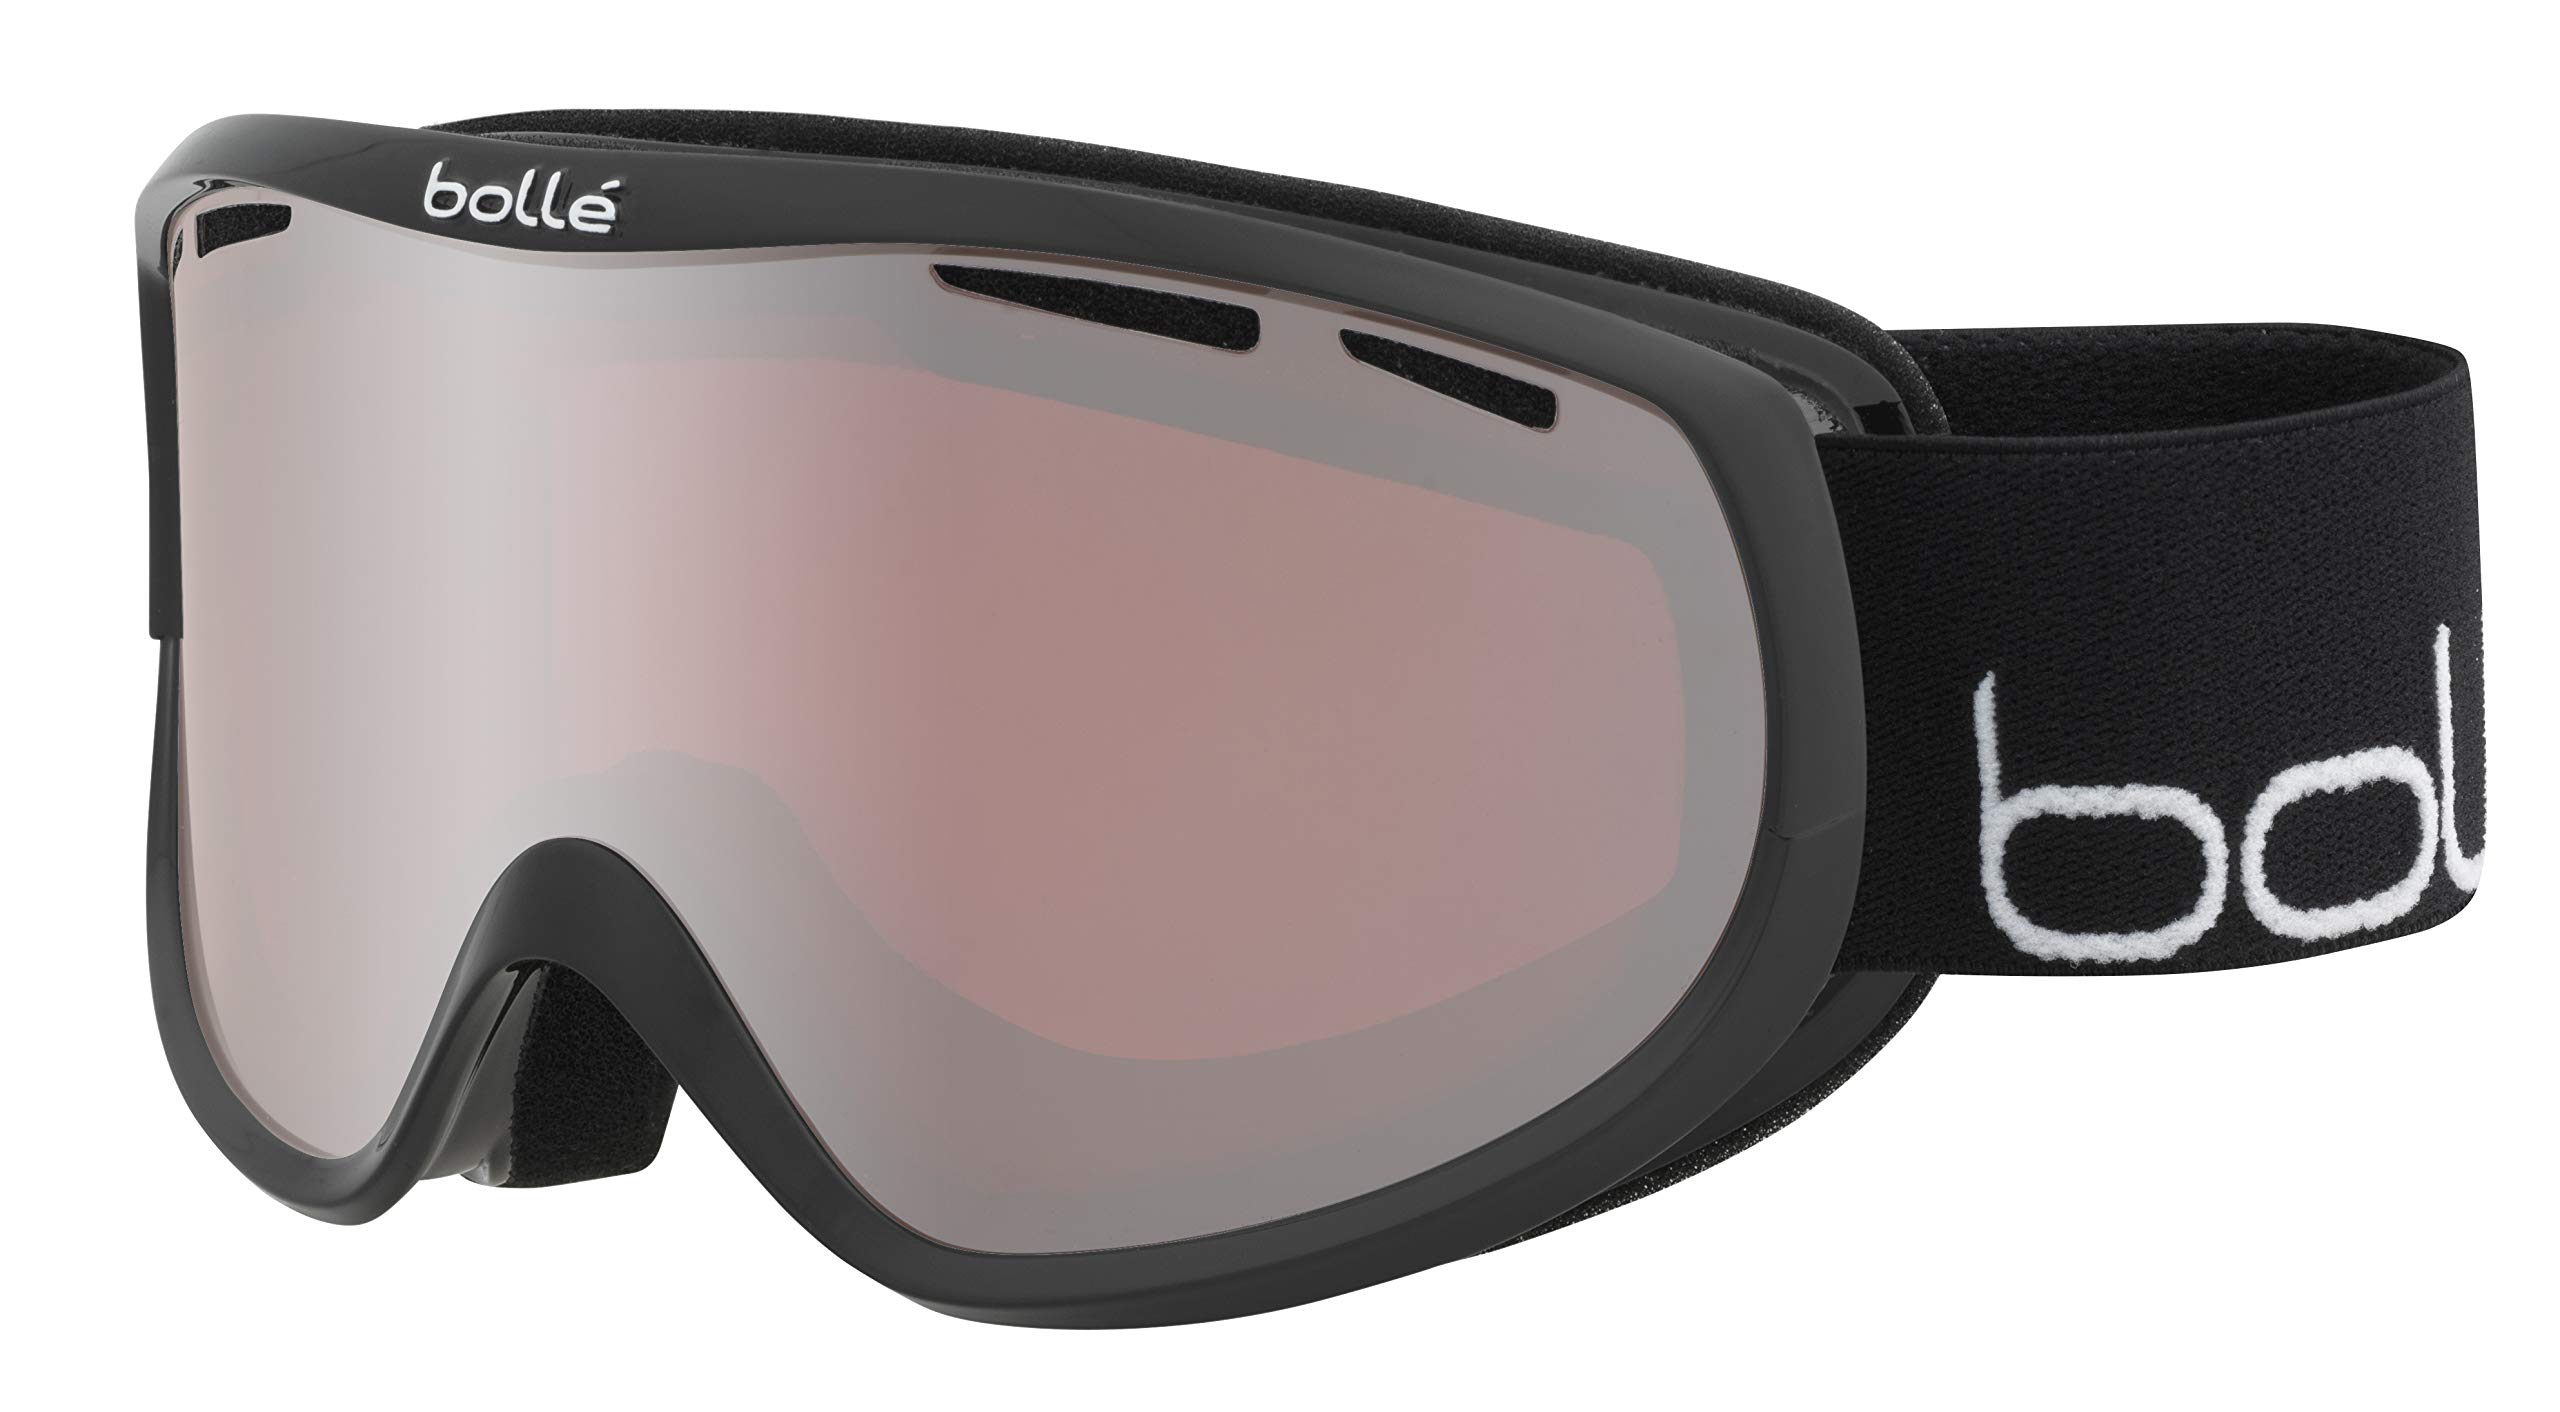 Bollé Sierra Shiny Black & Gold/Sunshine Small-Medium Ski Goggles